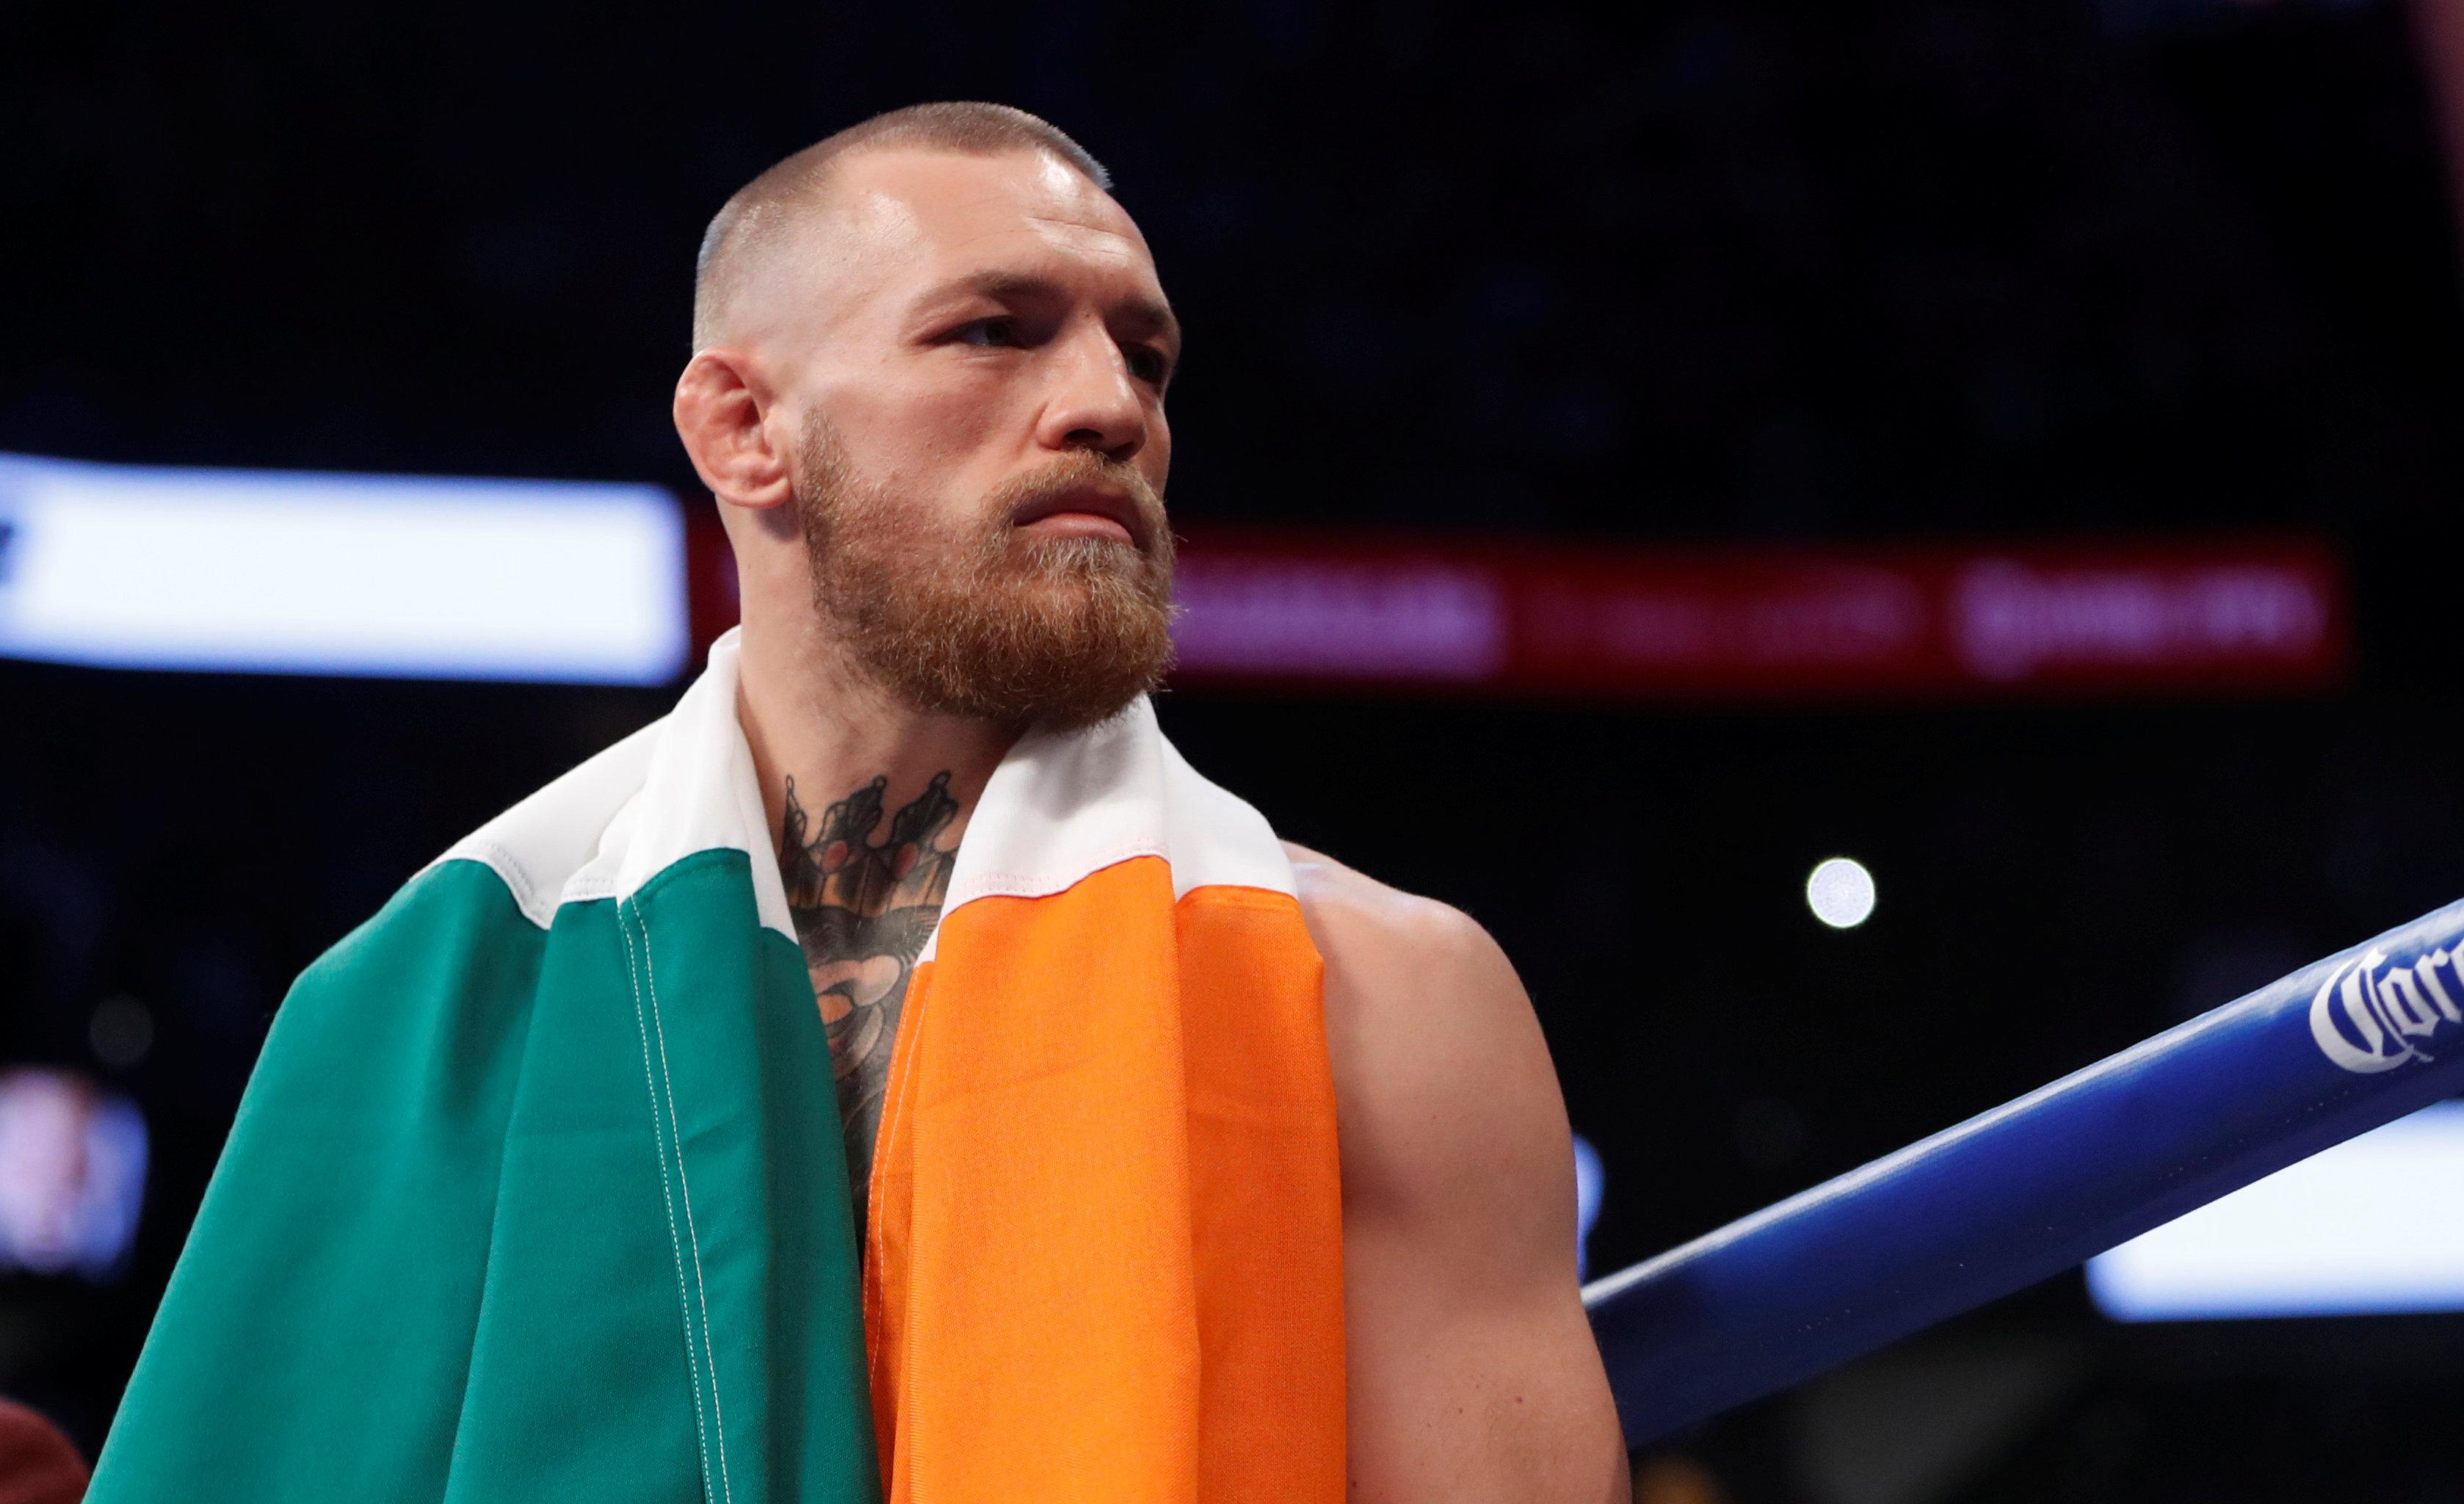 Tickets for Conor McGregor's UFC return are already on sale on tout sites - a week before general sale